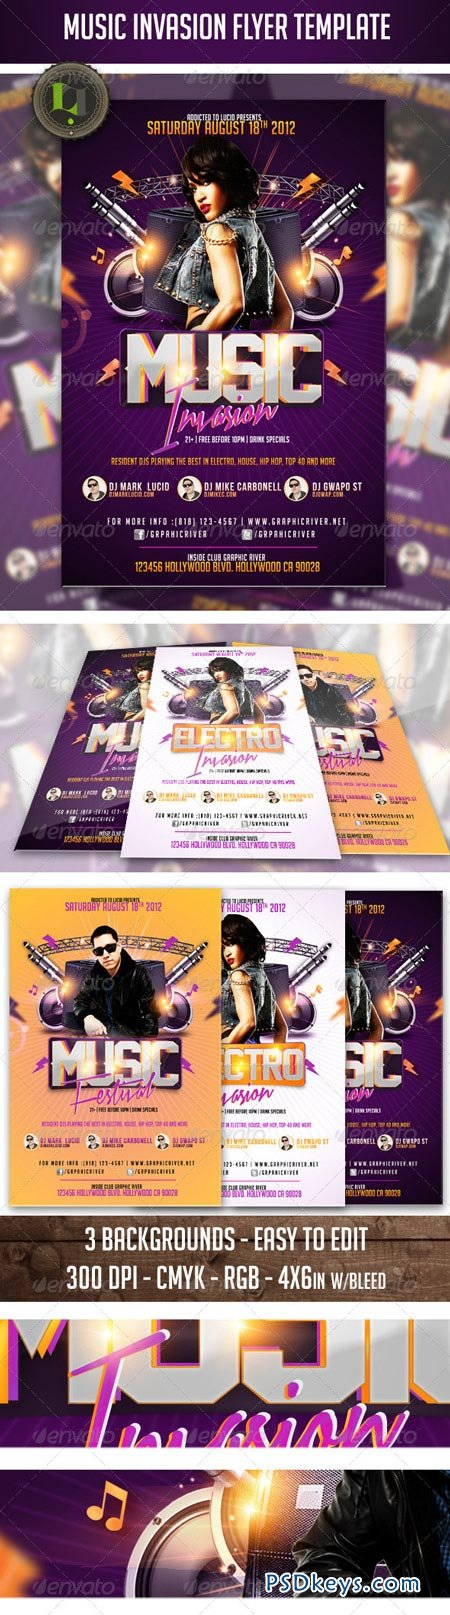 Music Invasion Flyer Template 2729203